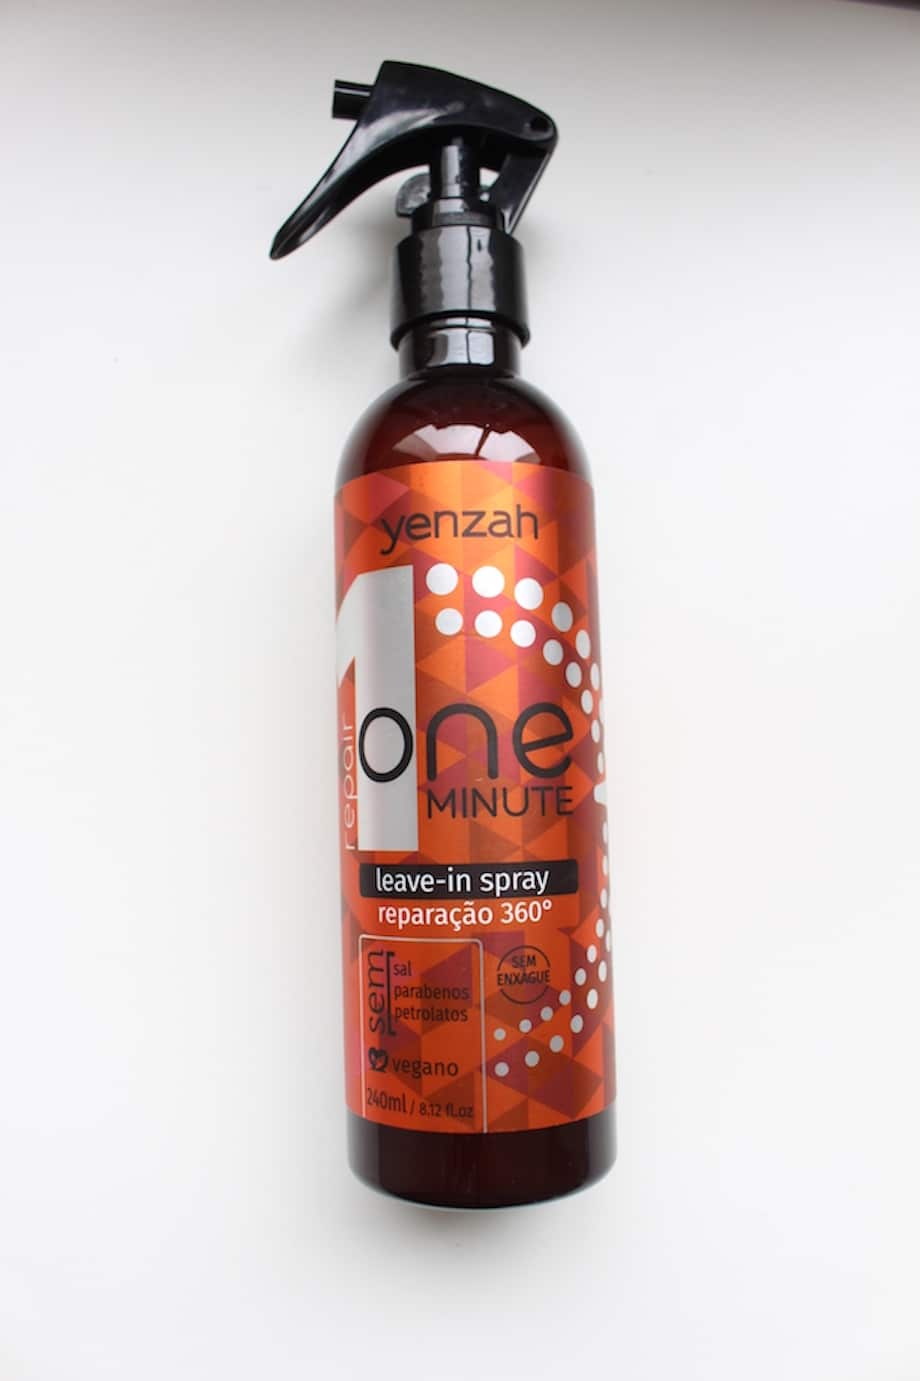 Resenha One Minute Yenzah, One Minute Yenzah, Yenzah, Resenha Yenzah, Produtos Yenzah, Resenha One Minute, One Minute, Yenzah One Minute, shampoo one minute yeanzah, máscara one minute yeanzah, leave in one minute yeanzah